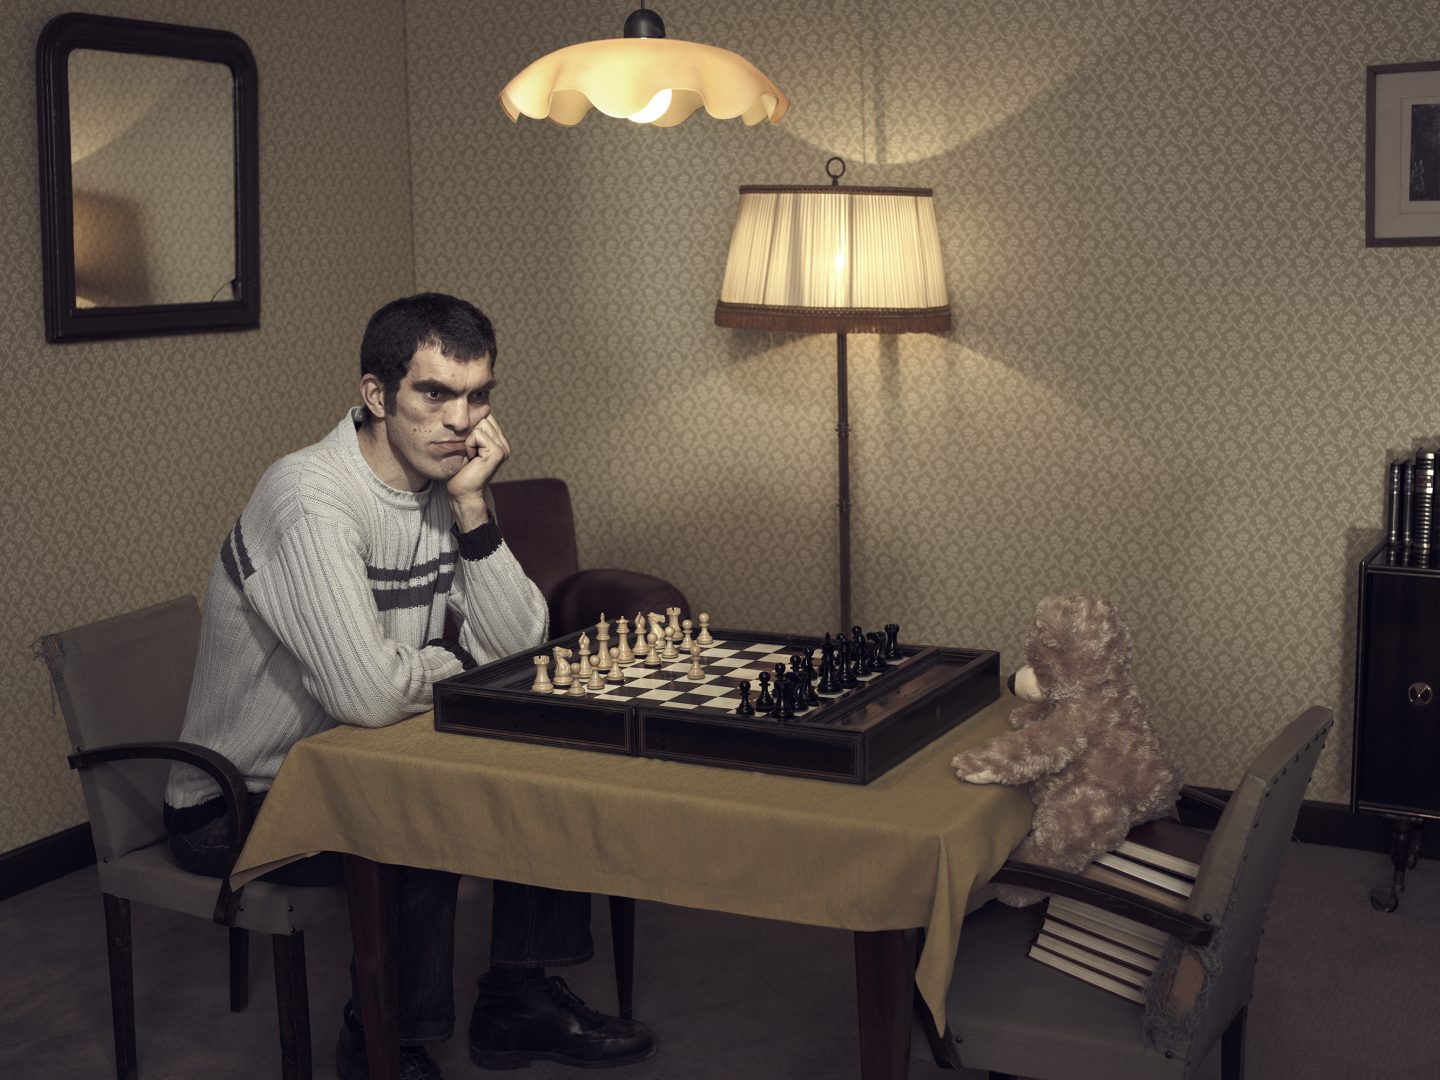 Man playing chess with teddy in room 42 by Stefan Rappo